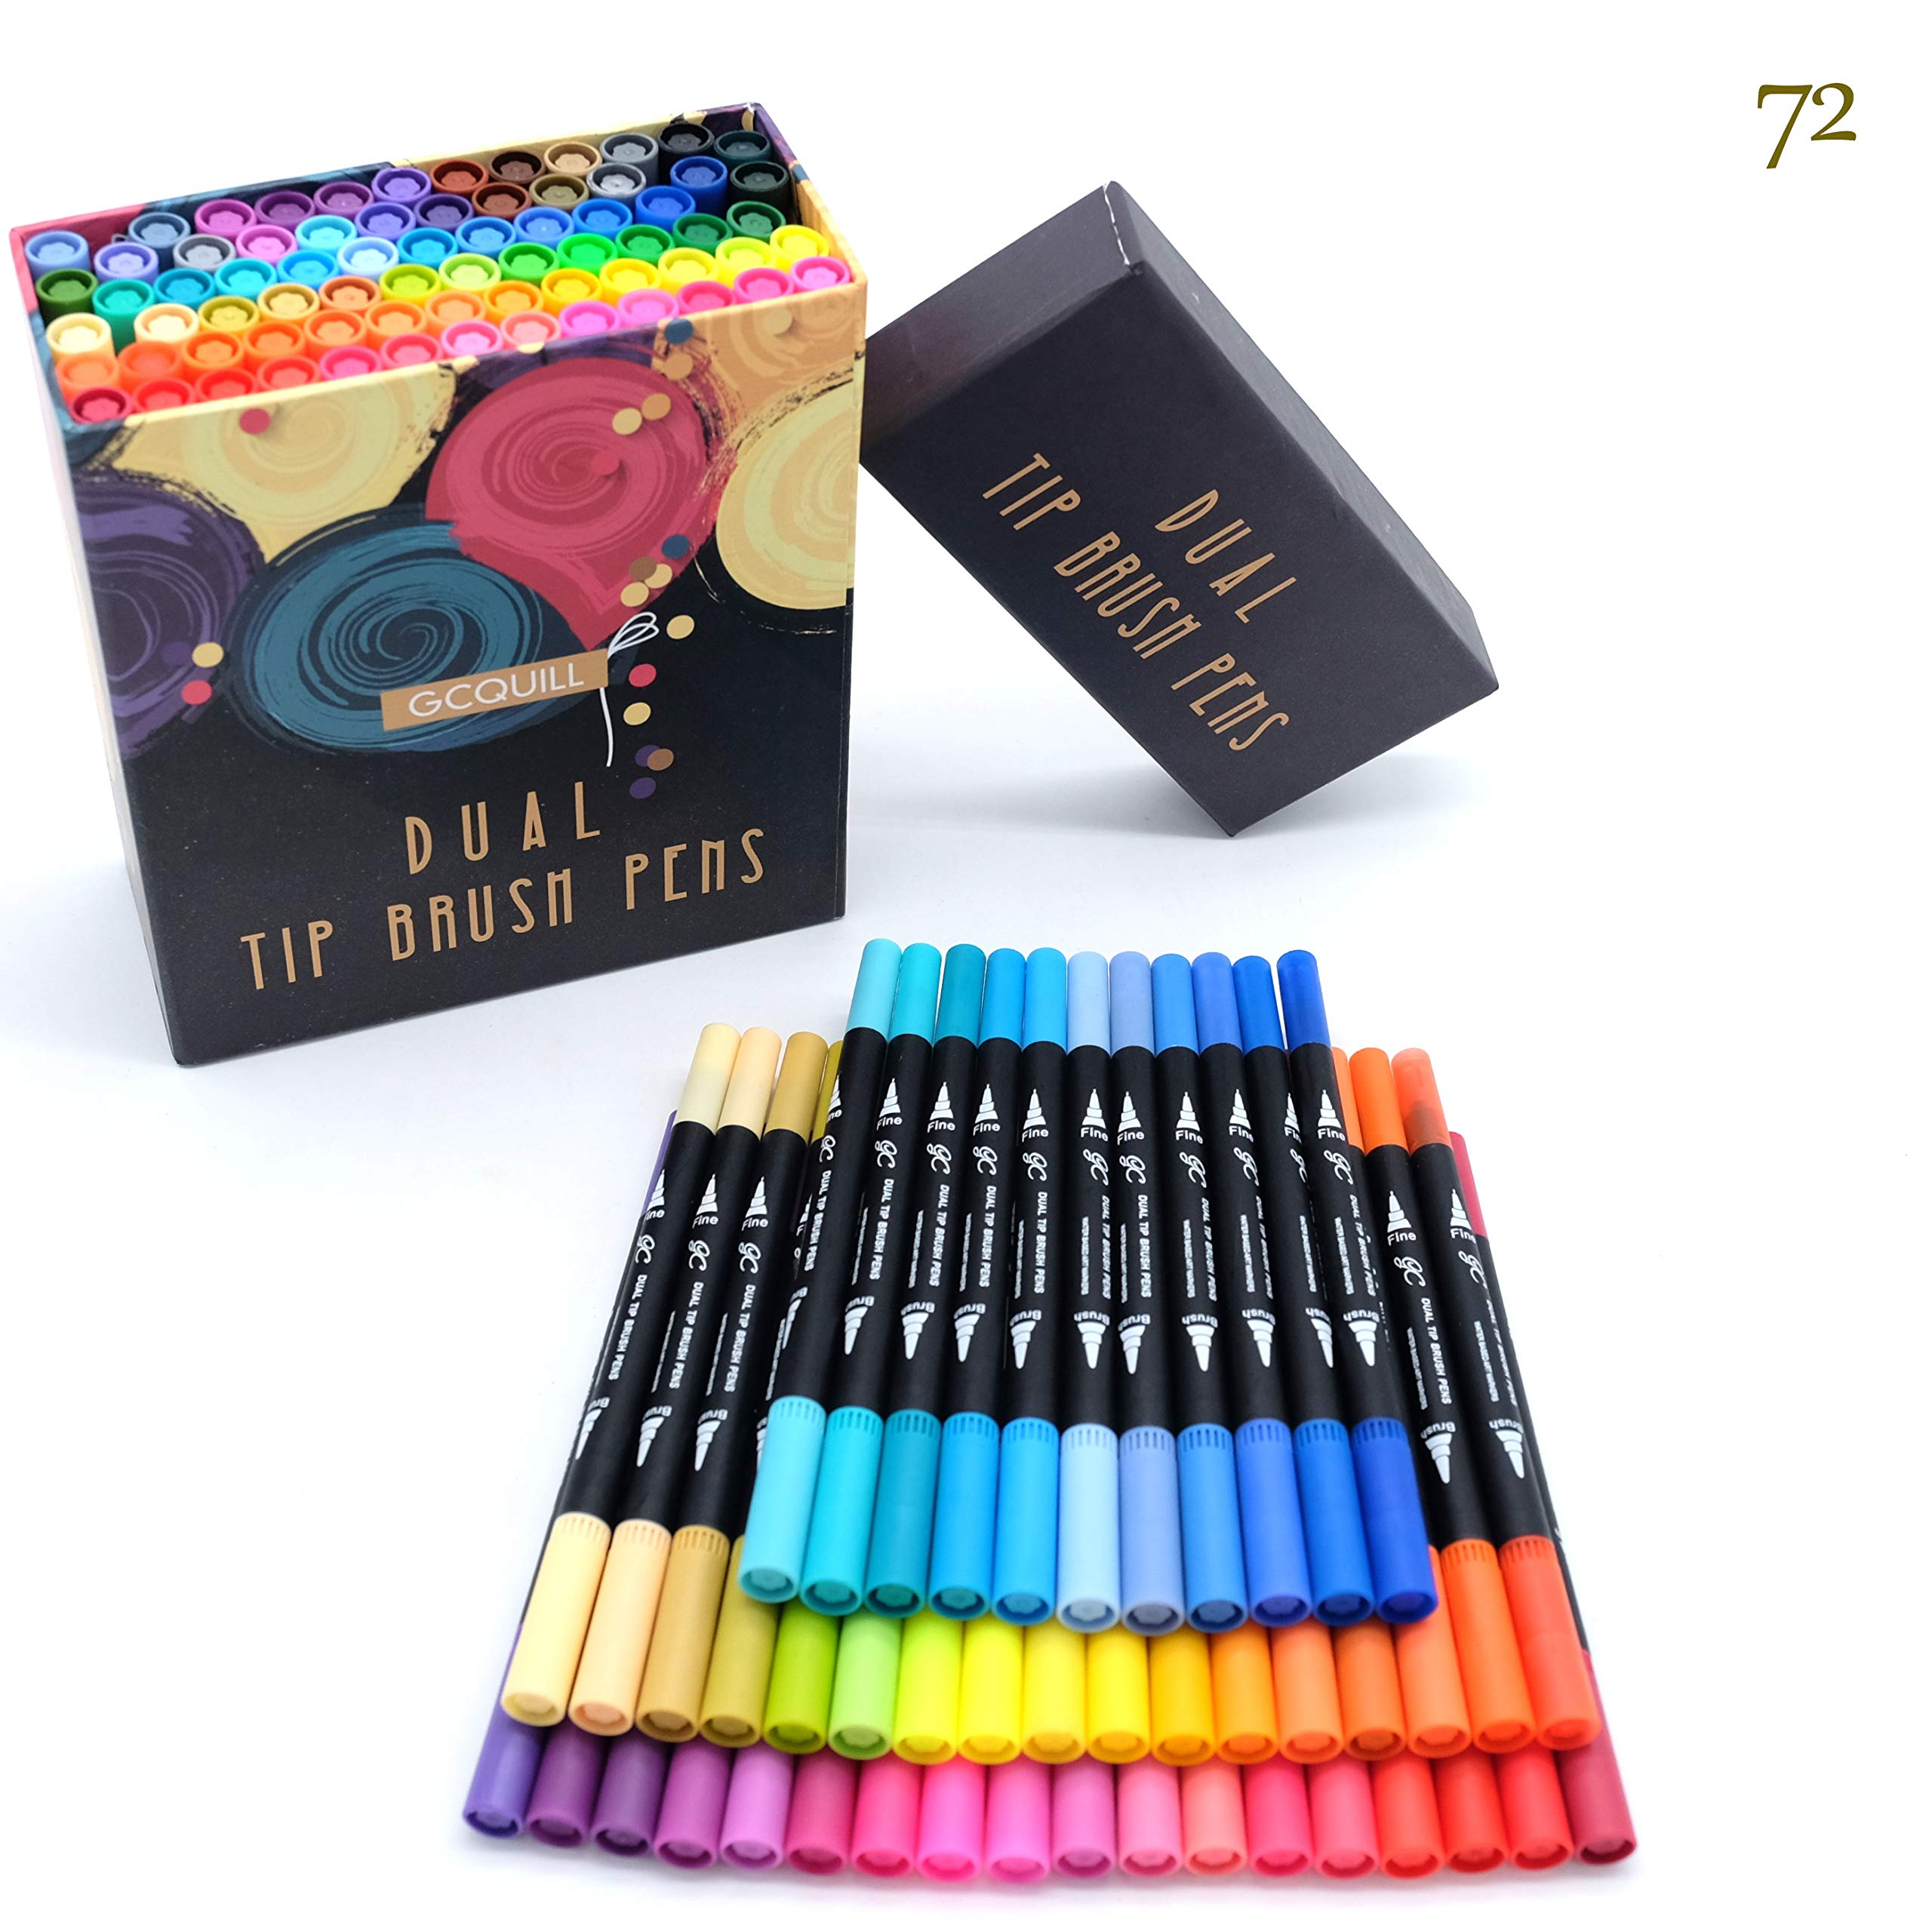 GC 72 Colors Dual Tip Brush Pens Highlighter 72 Art Markers 0.4mm Fine liners & Brush Tip Watercolor Pen Set for Adult and kids Coloring Books Bullet Journal, Calligraphy, Hand Lettering, Note Taking by GC WRITING QUILL (Image #9)